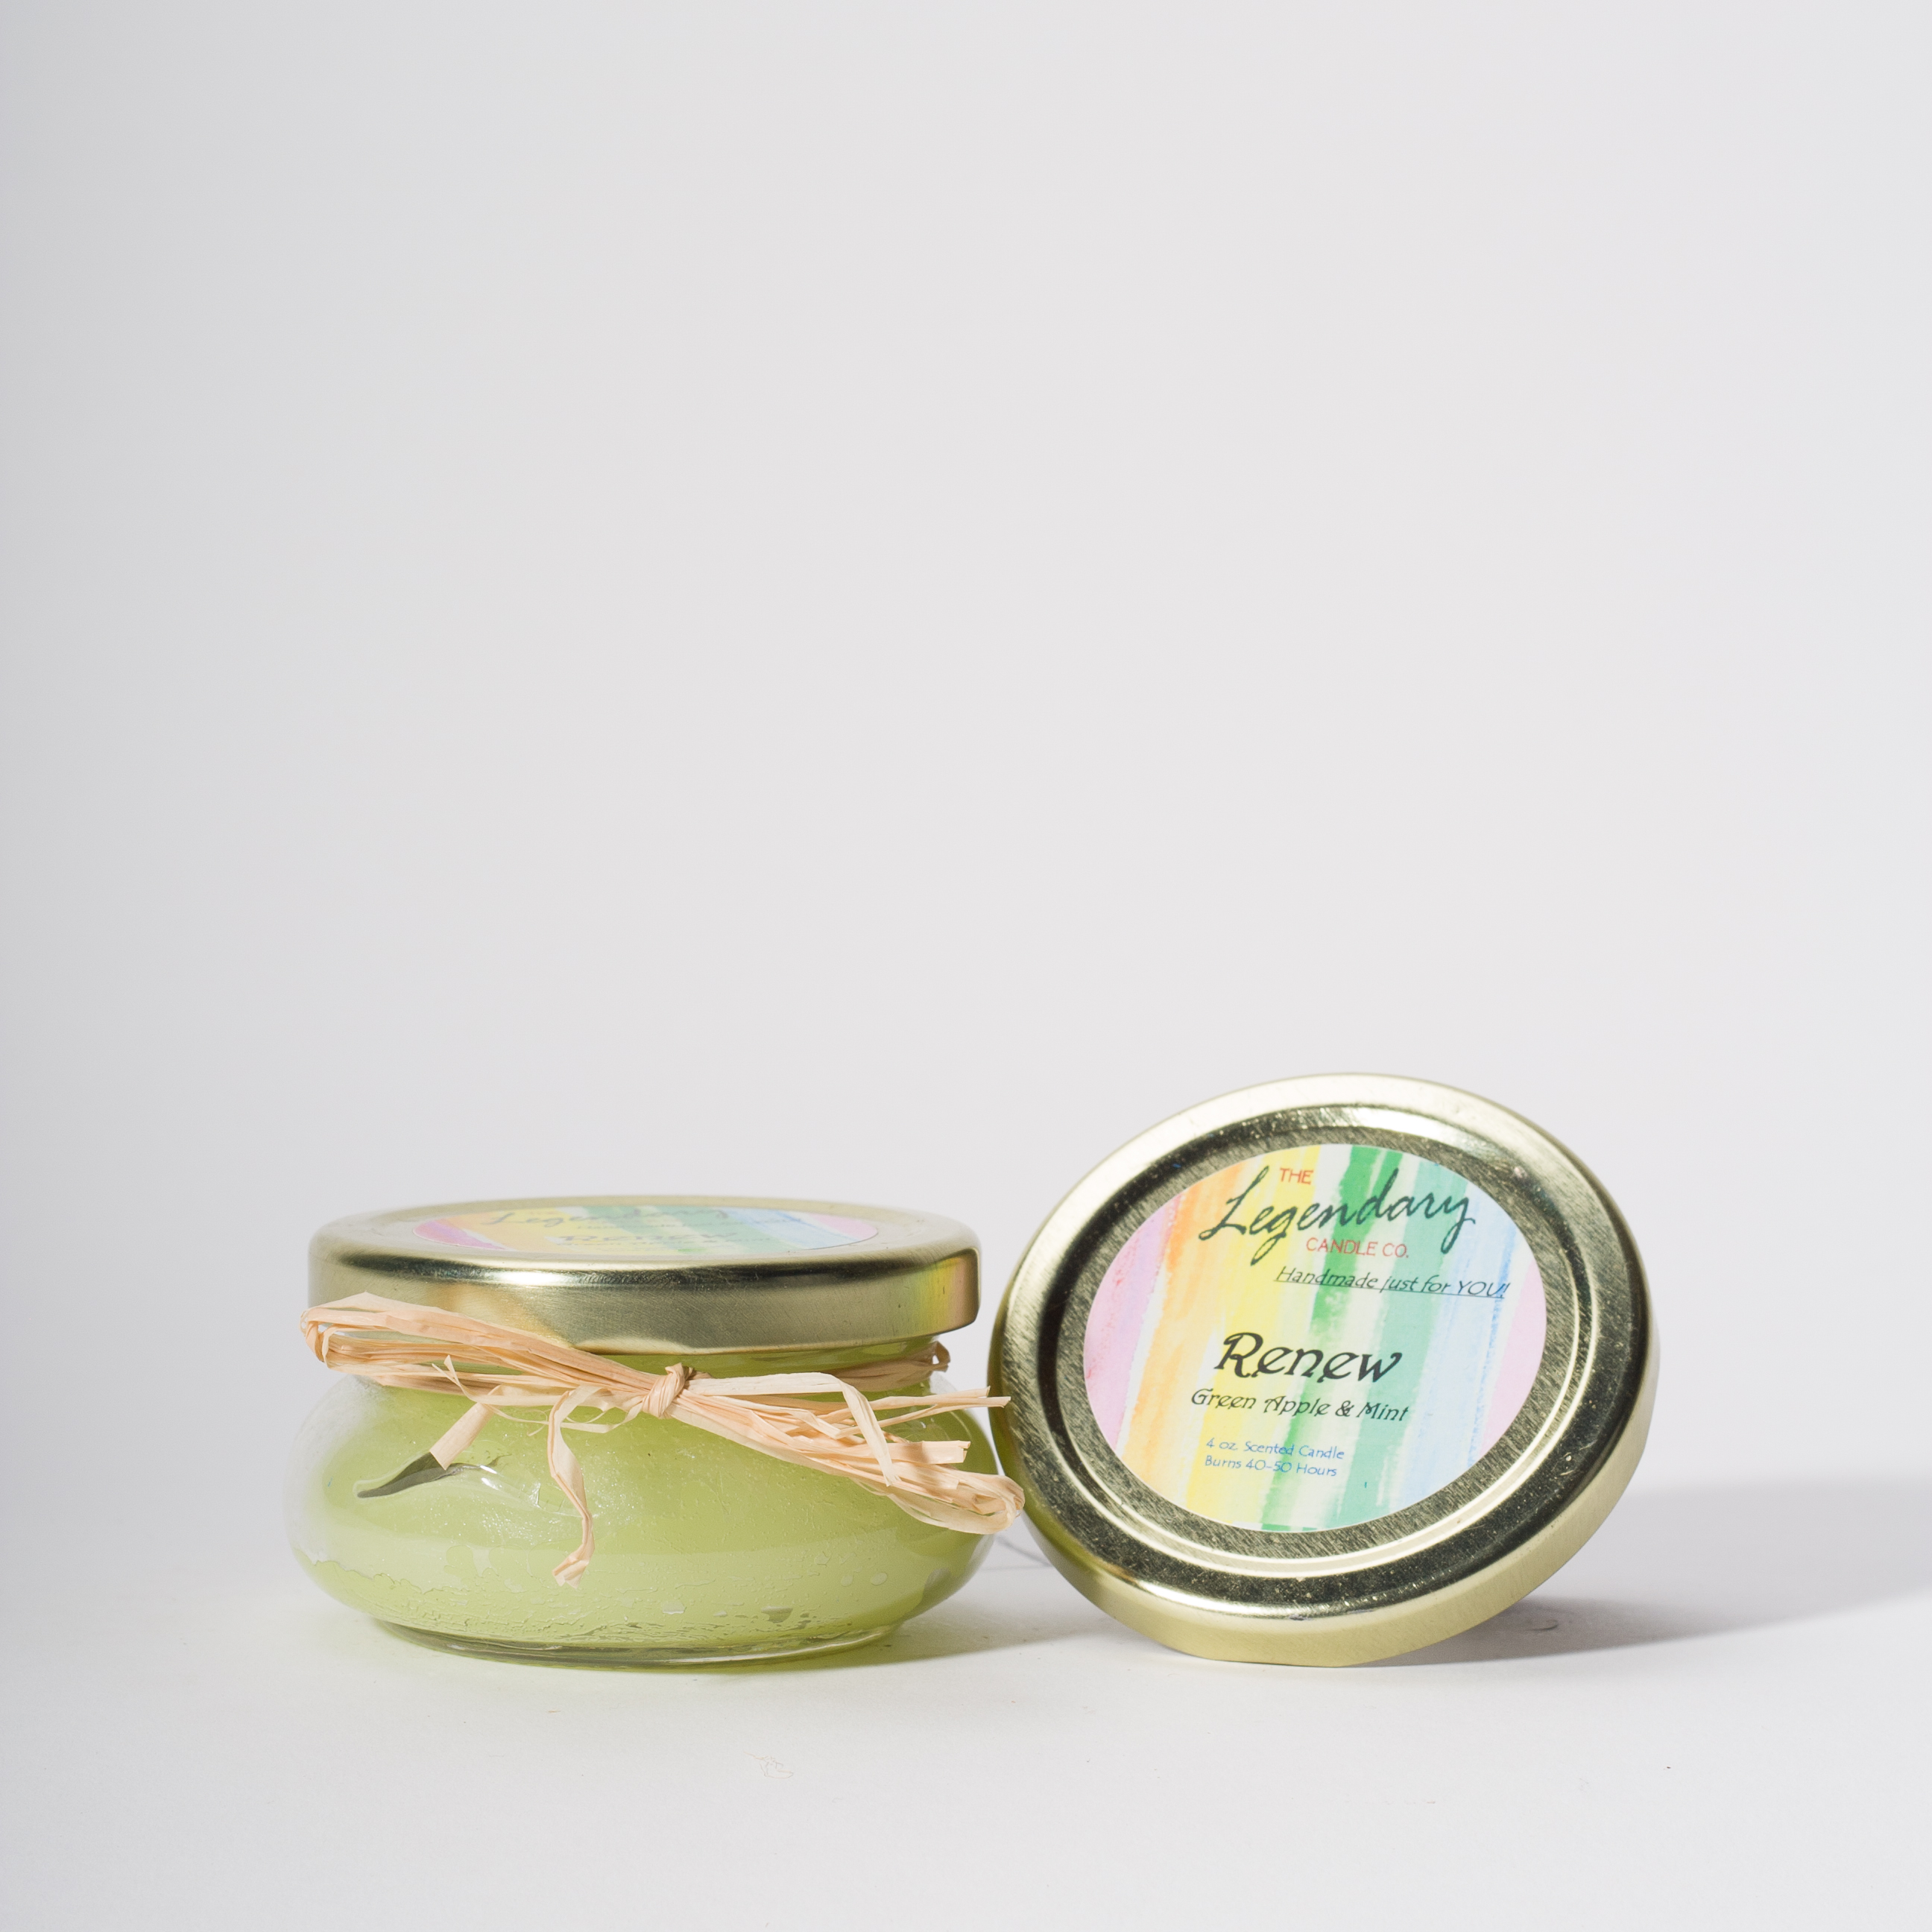 4 Ounce Renew Scented Tureen Jar Candle